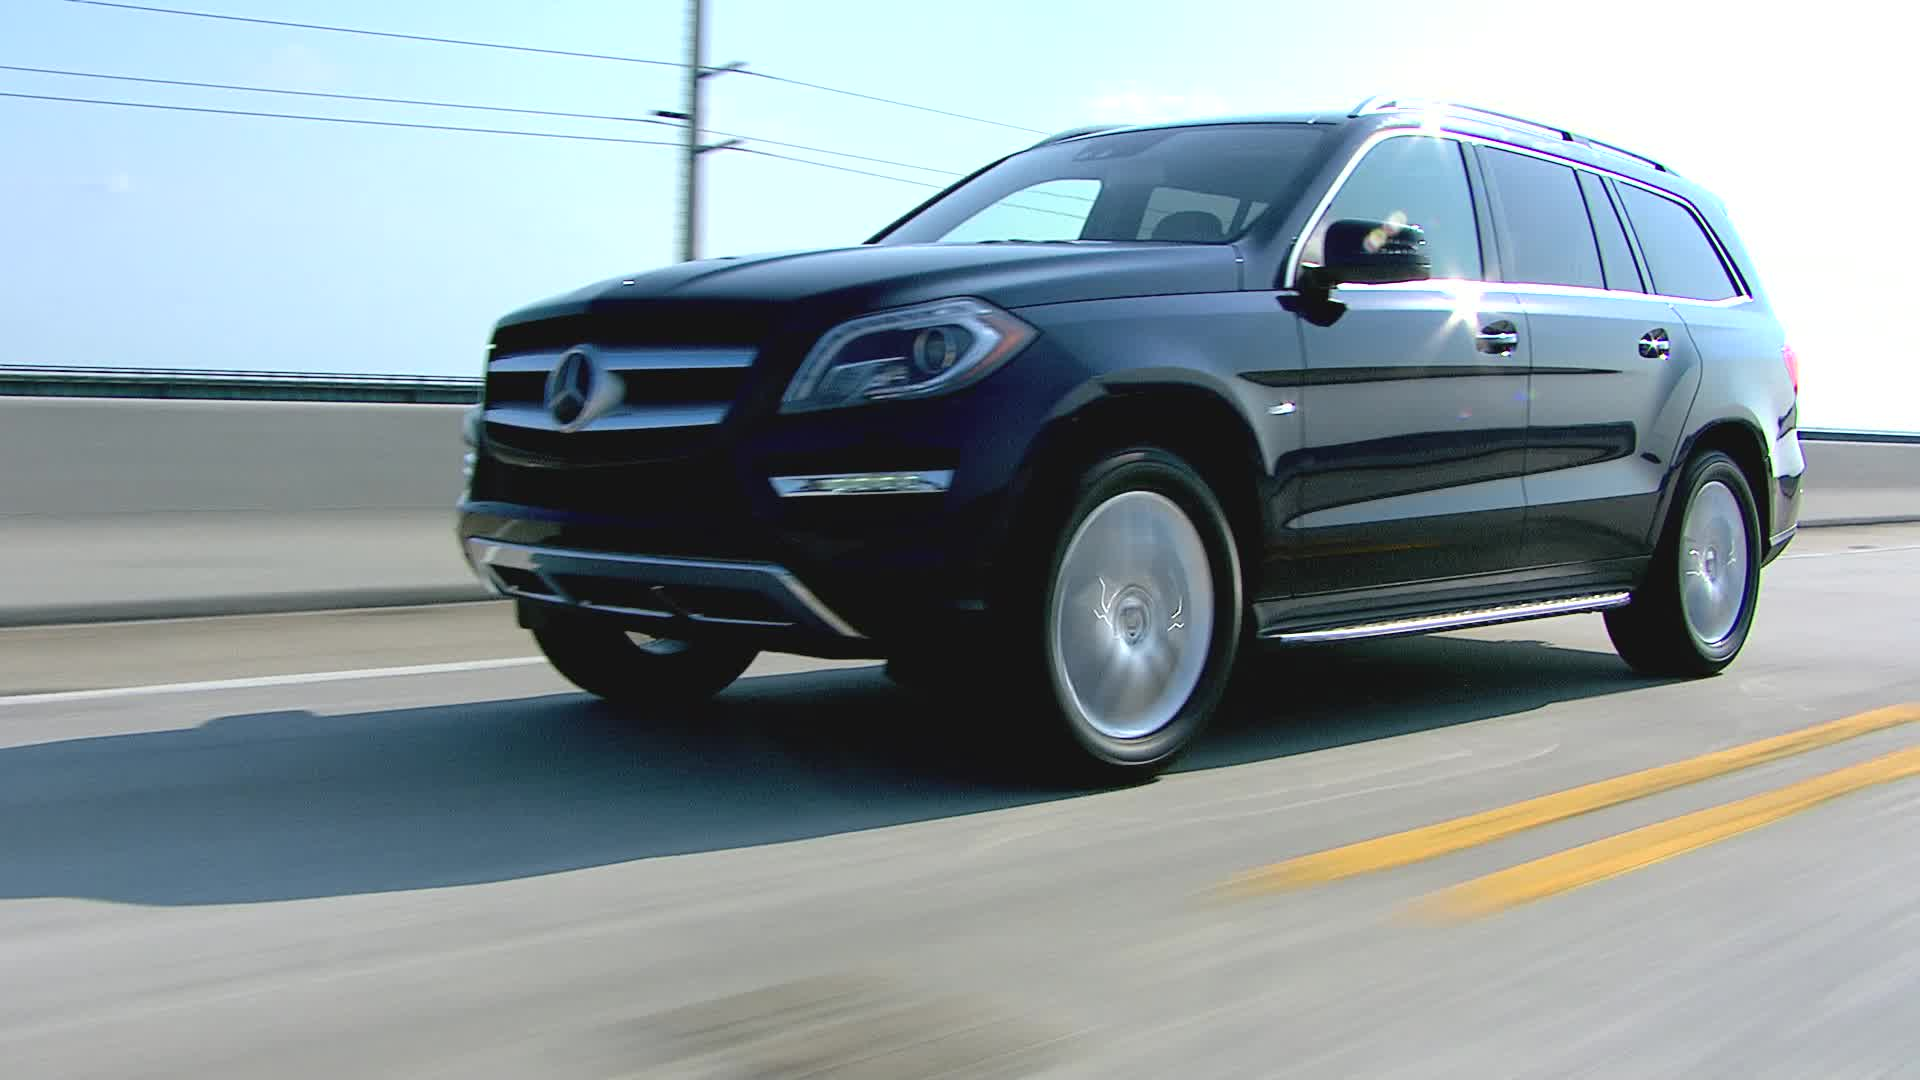 2013 Mercedes-Benz GL450 - Running Footage